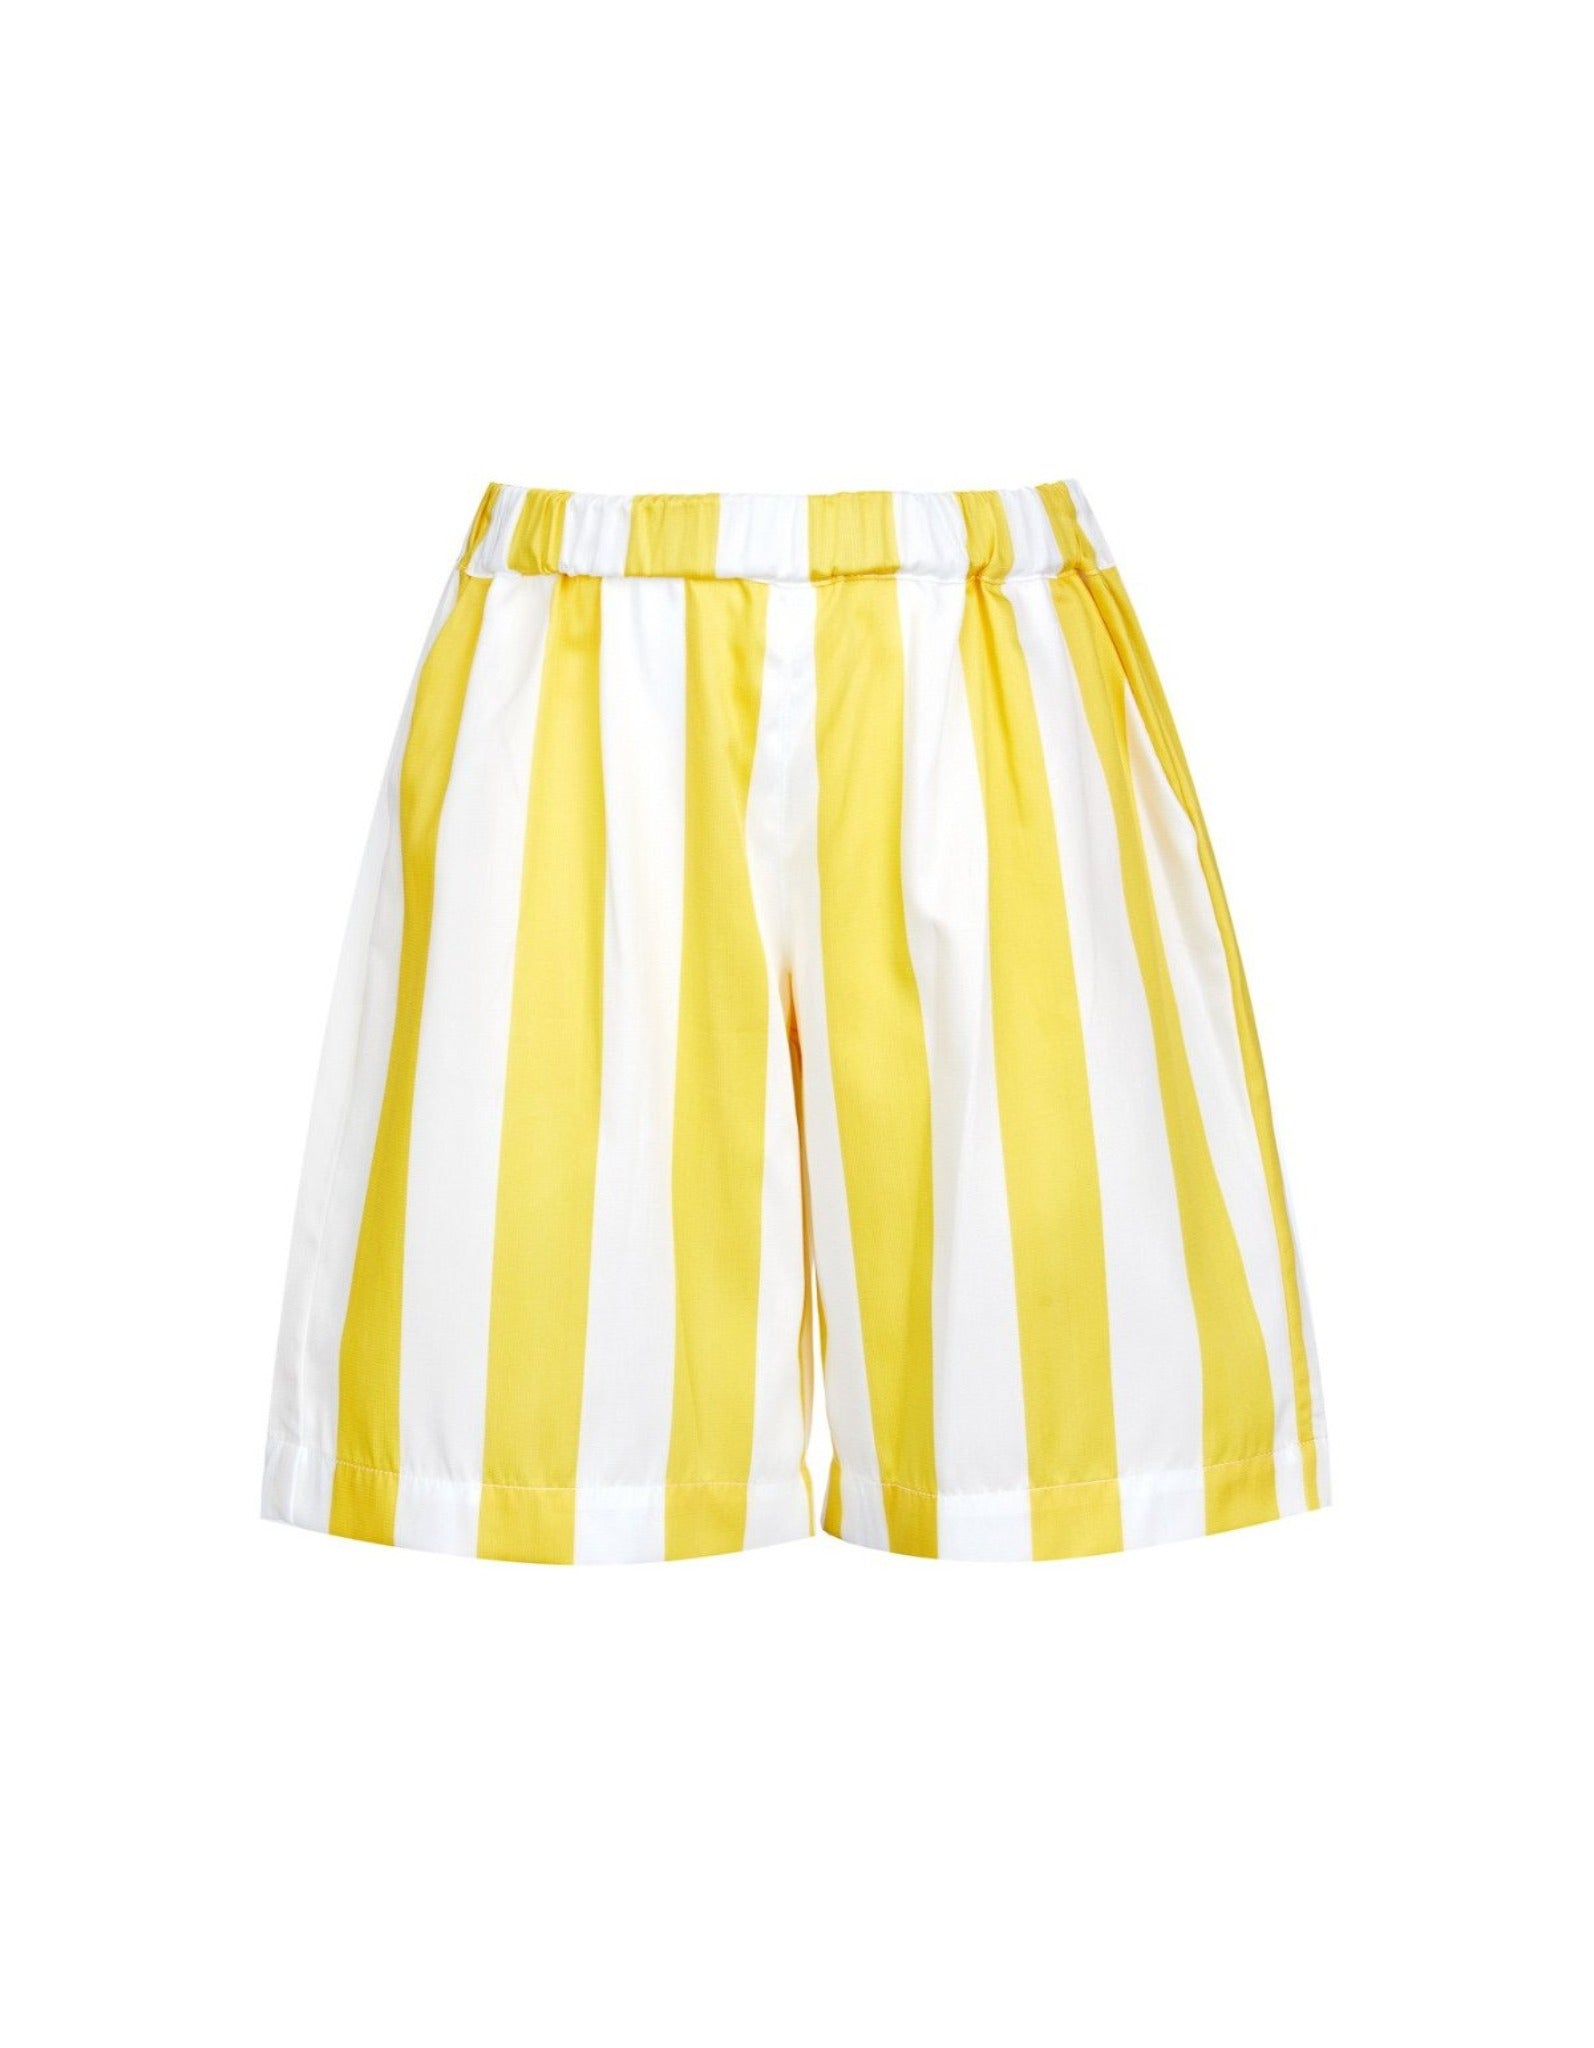 M'A KIDS CLASSIC SHORTS IN STRIPES